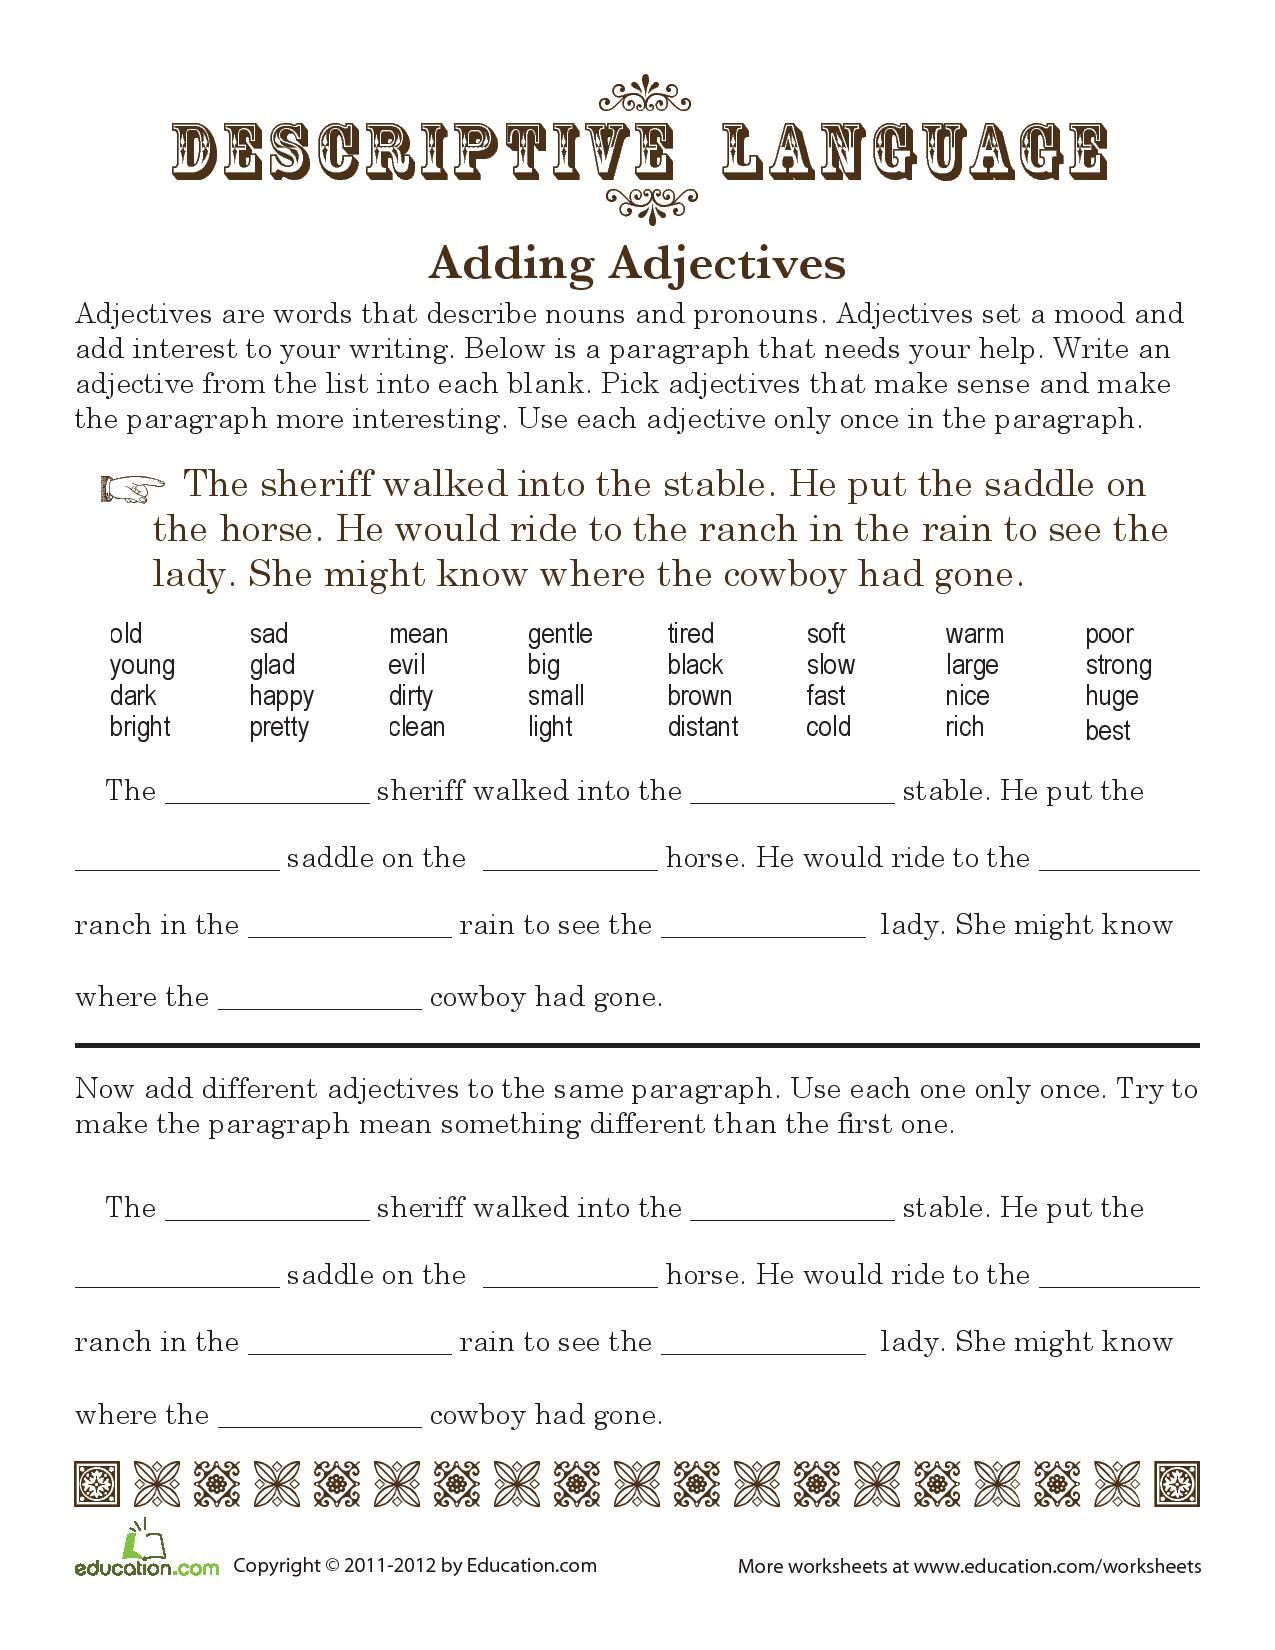 Time to saddle up some adjectives! Descriptive language adds ...